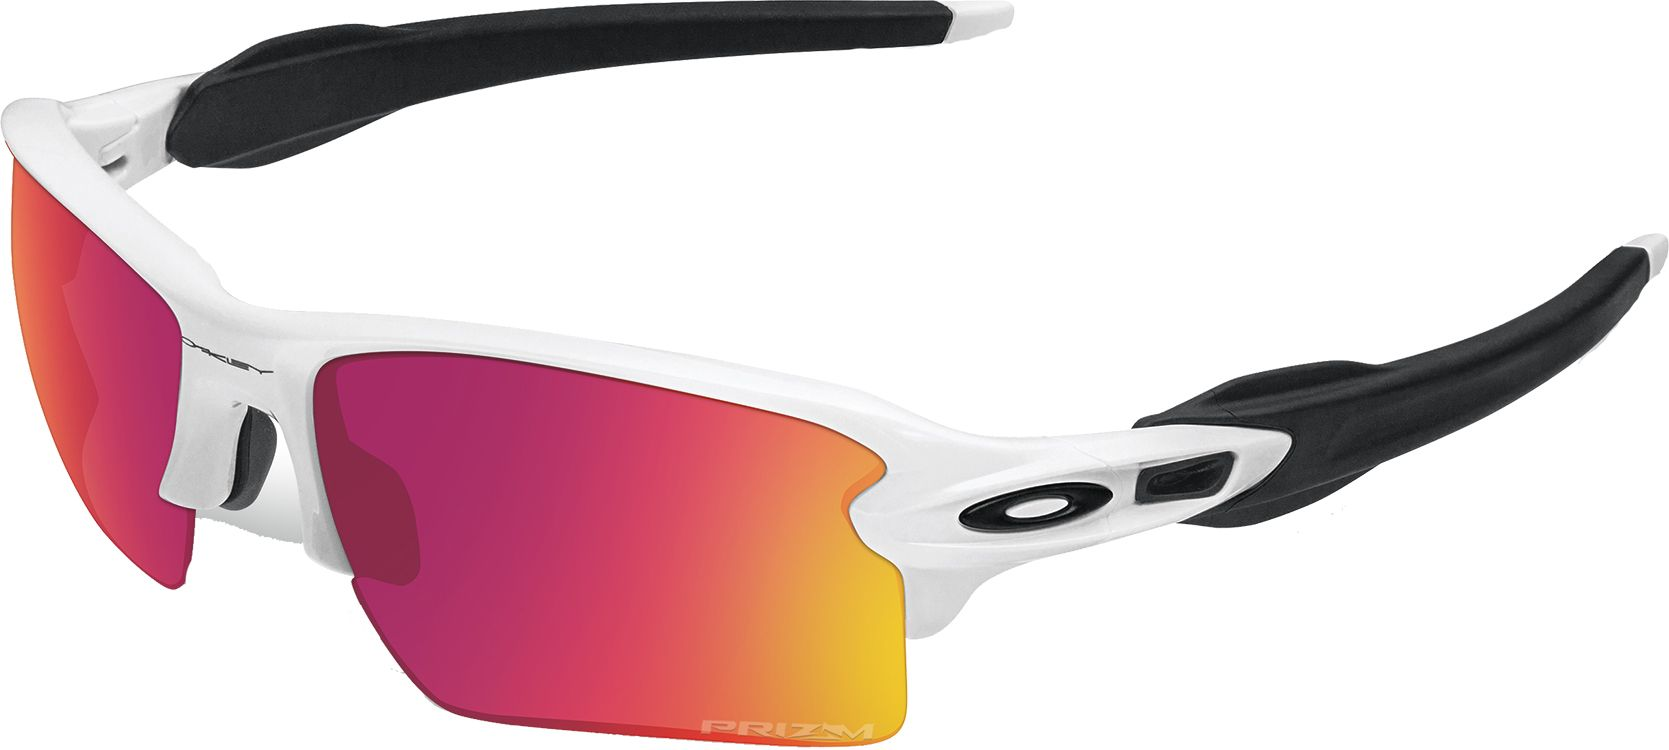 oakley sunglasess  product image oakley flak 2.0 xl baseball sunglasses